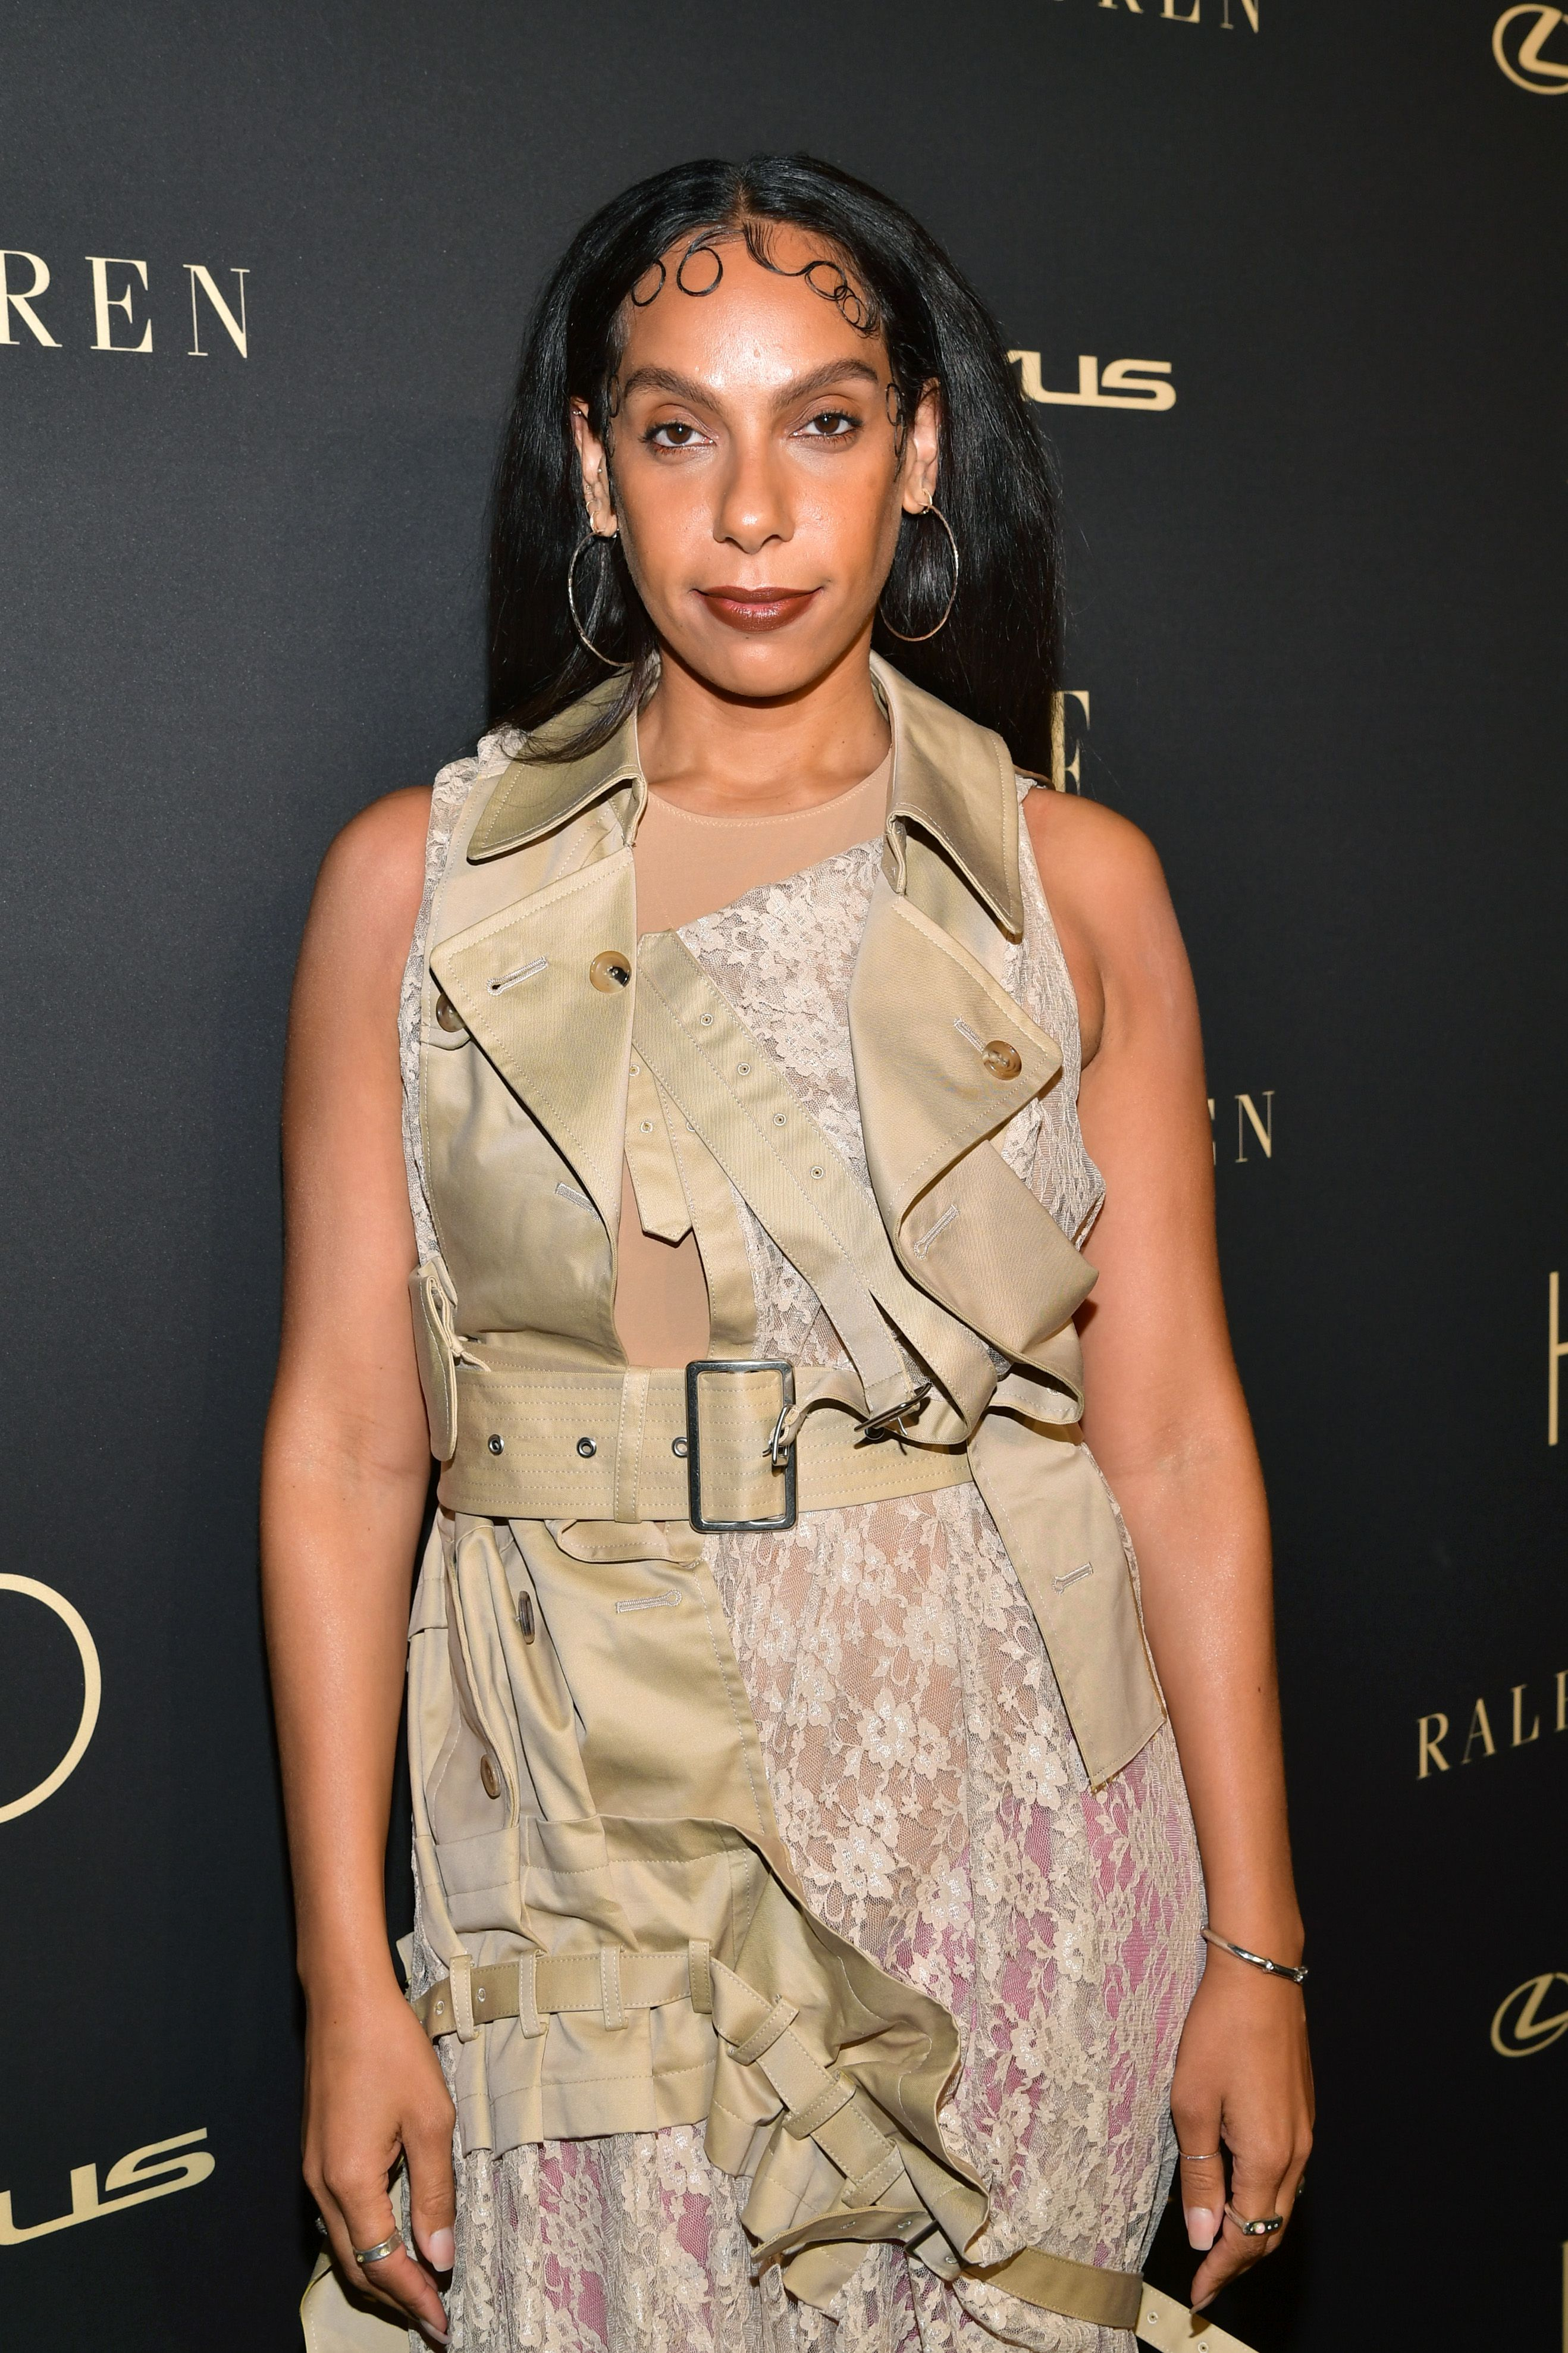 Queen & Slim Director Melina Matsoukas Wants Justice For Atatiana Jefferson